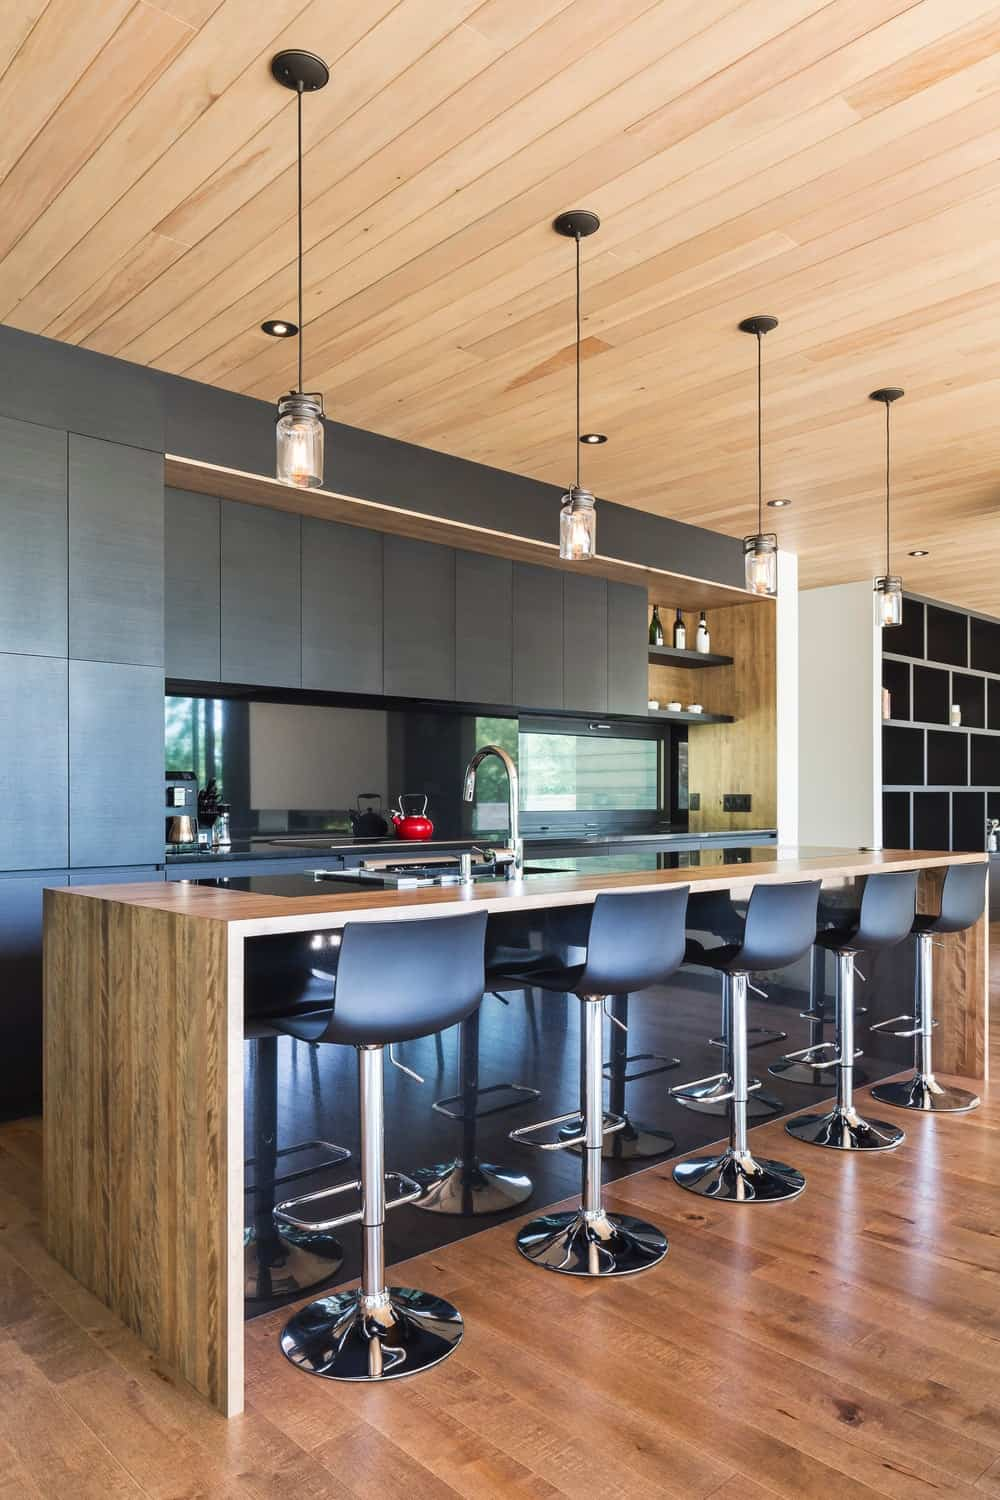 This modish kitchen features a brown and black color combination. The bar stools are amazingly stylish, perfect match for the narrow center island.